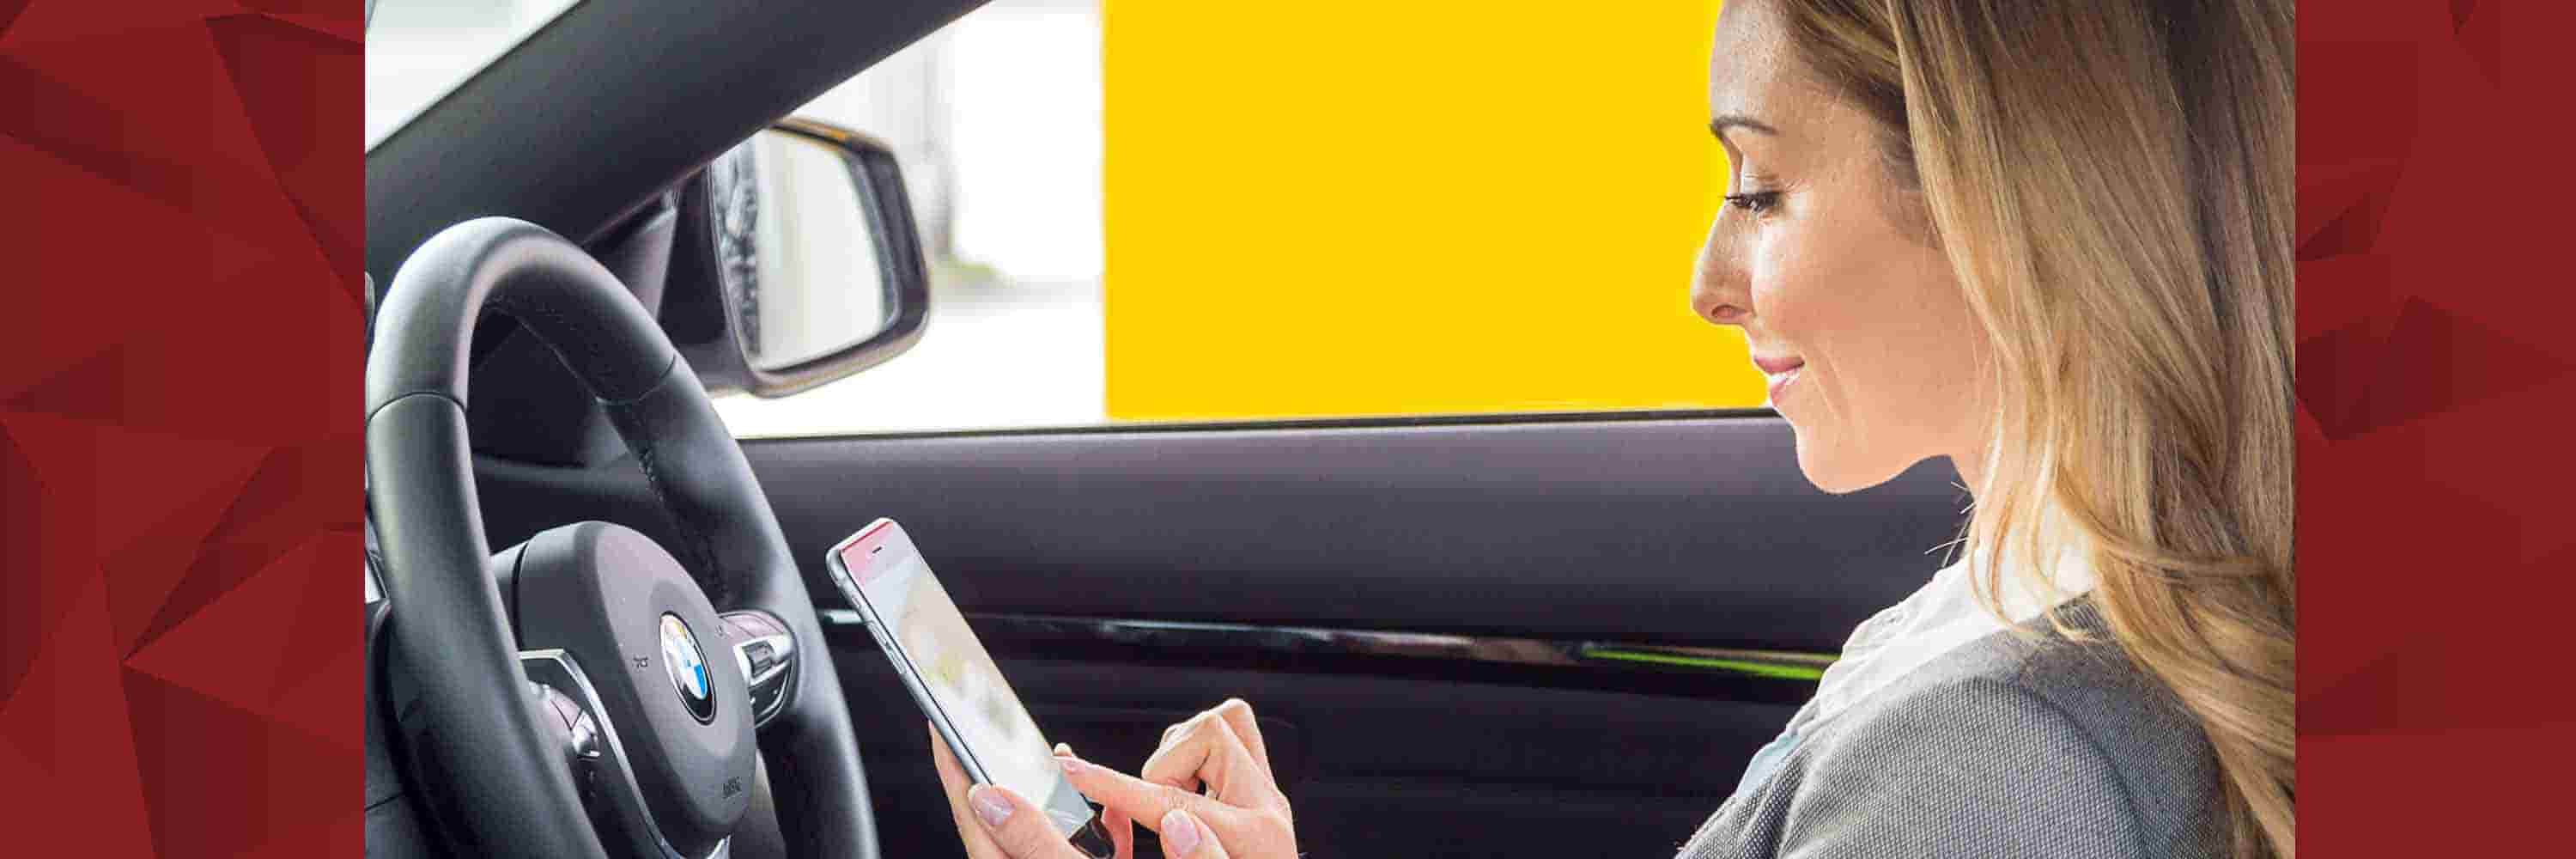 pay for fuel using your smartphones